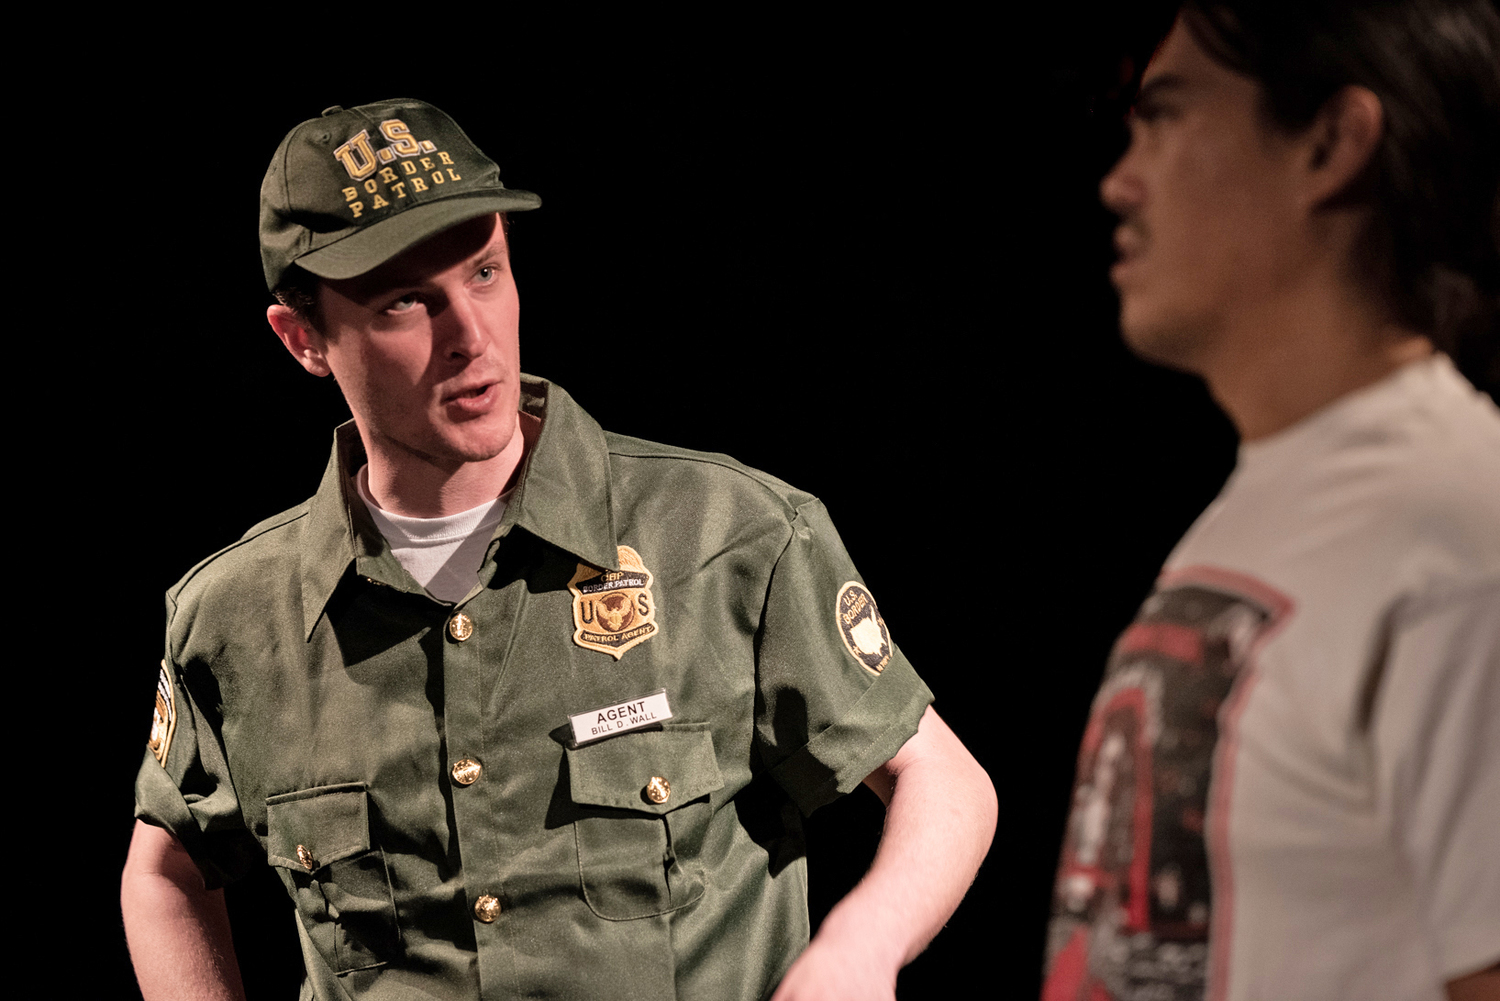 BWW Review: BOUND contemplates Native sovereignty amidst escalating tensions at the border wall